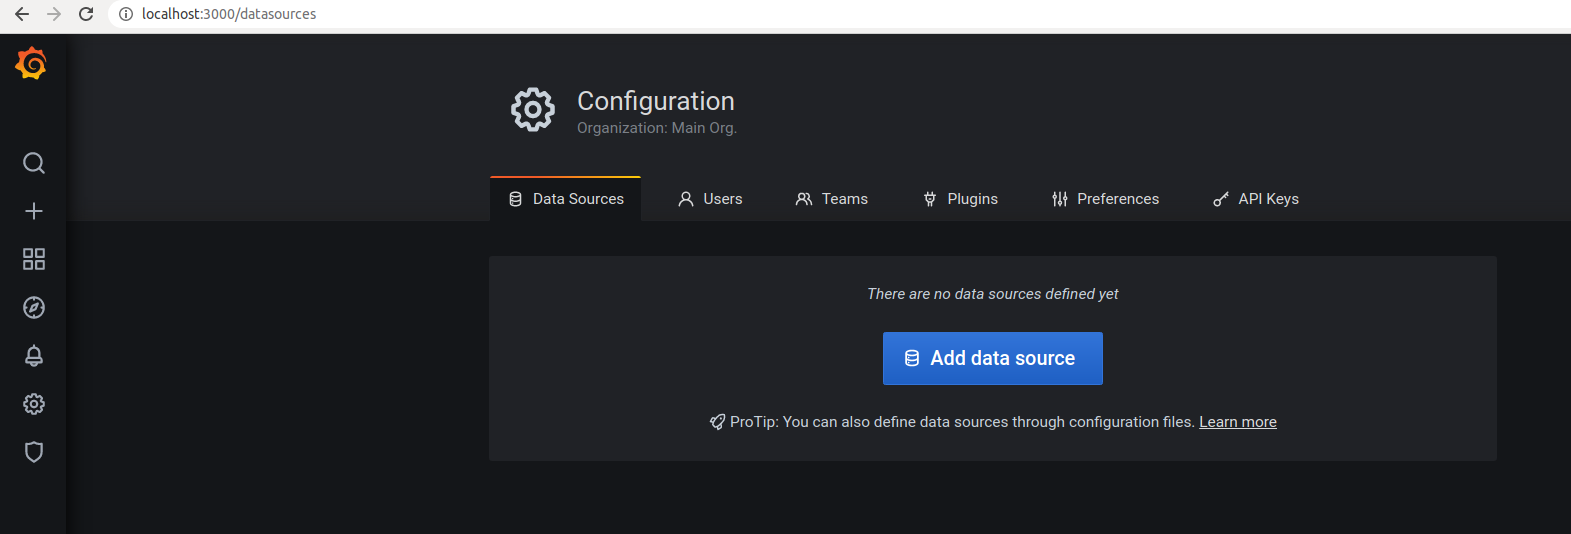 We have to add the data source to be able to monitor an app with Grafana